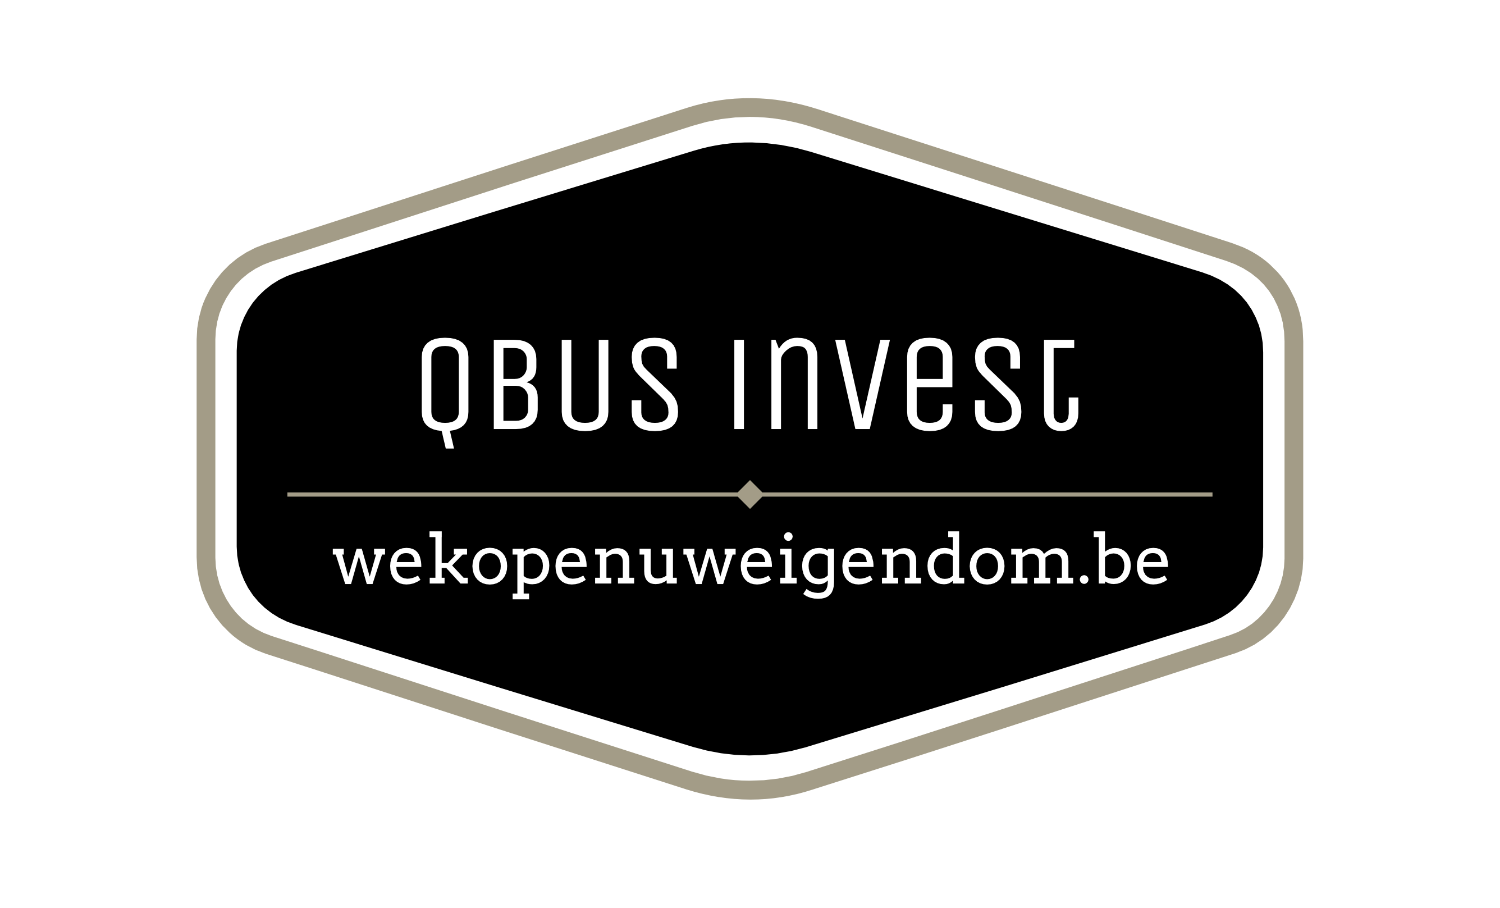 wekopenuweigendom.be